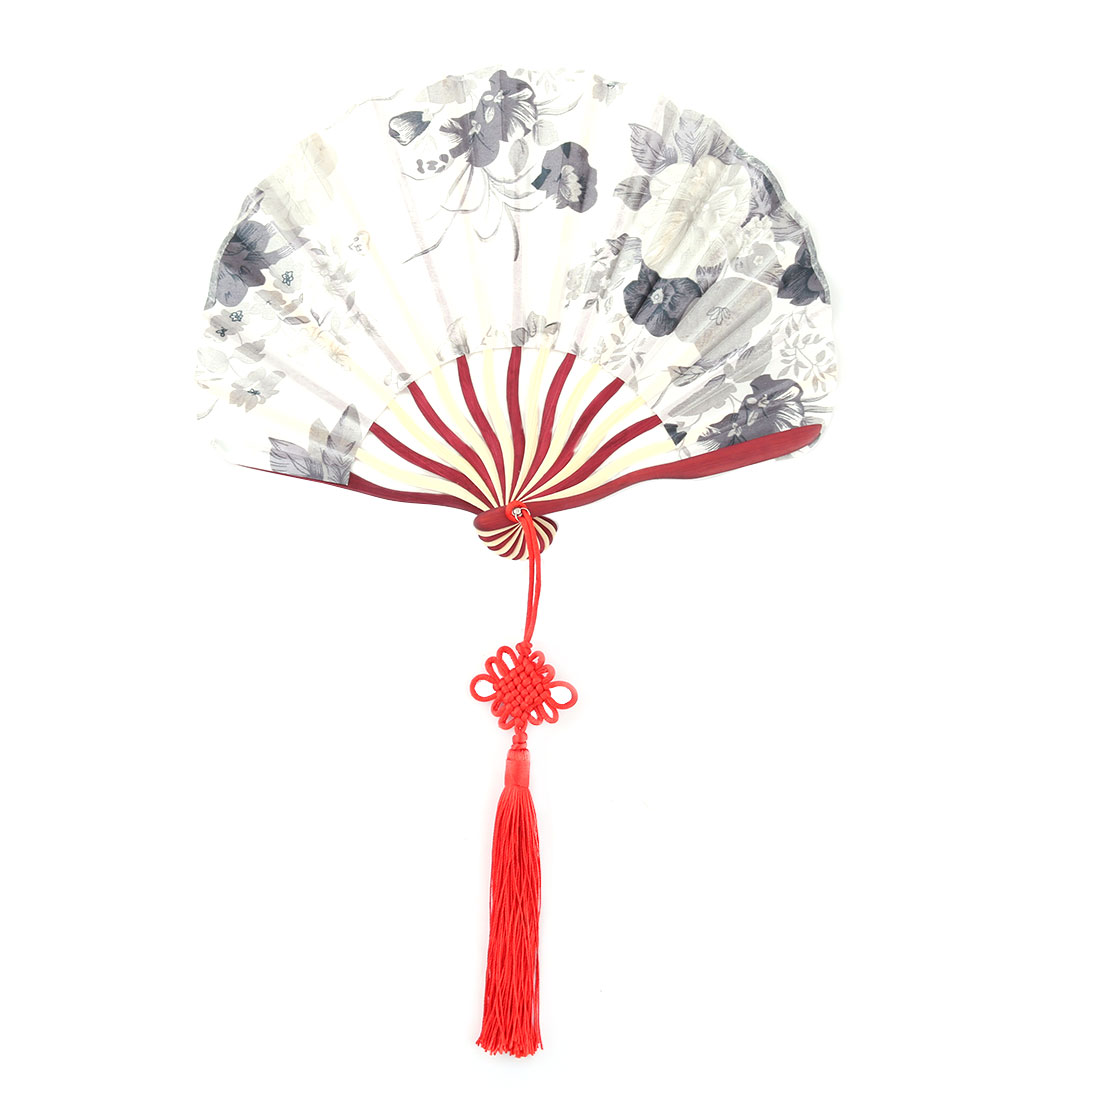 Bamboo Frame Flower Pattern Chinese Knot Tassel Decor Dancing Hand Fan Gray